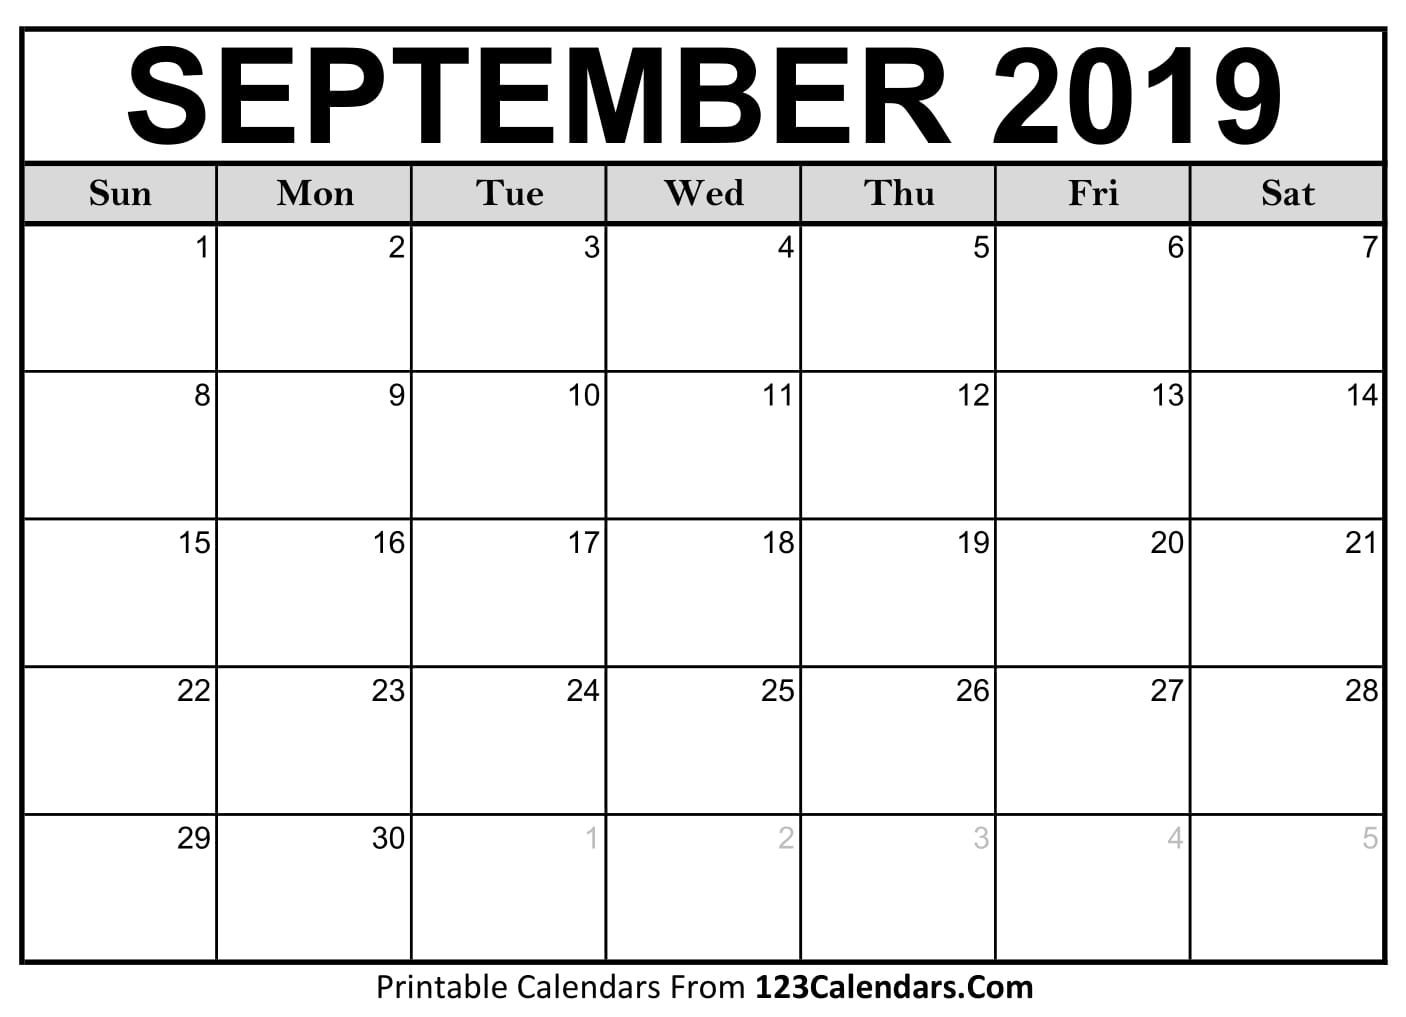 photograph regarding Monthly Printable Calendar identified as September 2019 Printable Calendar